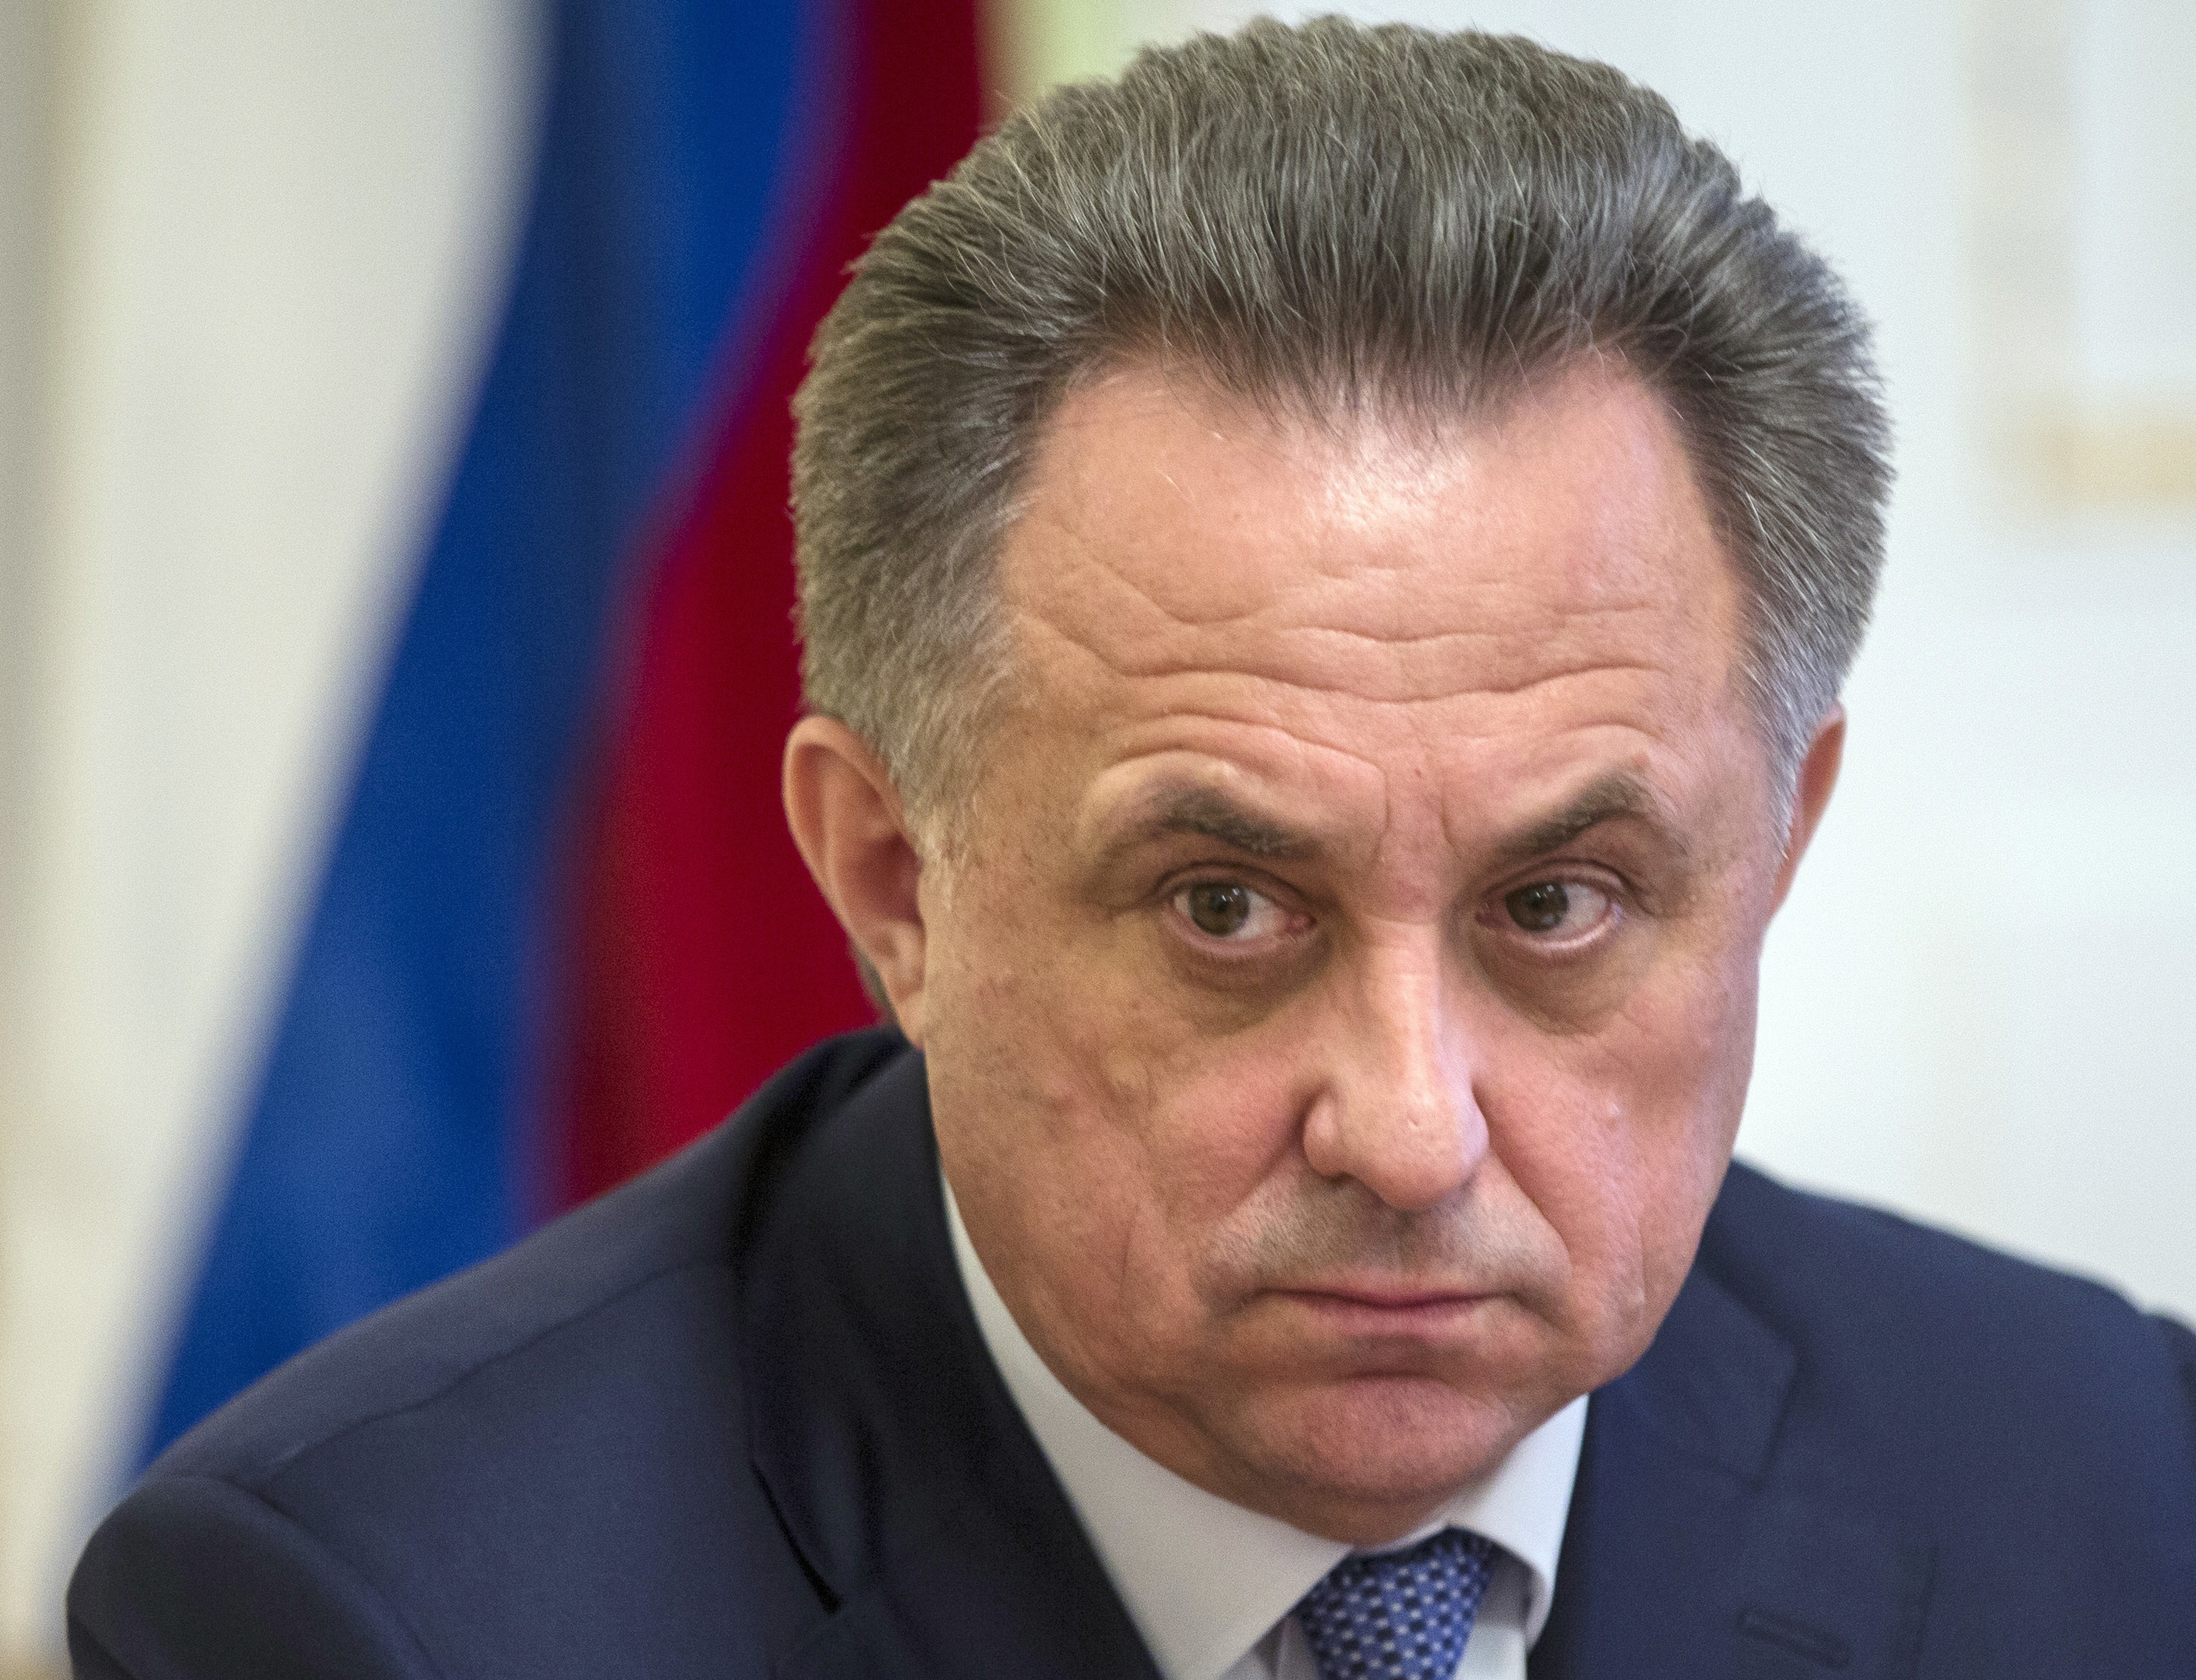 FILE - In this Wednesday, Dec. 23, 2015 file photo, the then Russian Sports Minister Vitaly Mutko holds a news conference in Moscow, Russia. Russian Deputy Prime Minister Vitaly Mutko said Saturday Dec. 10, 2016, the country will accept an International O